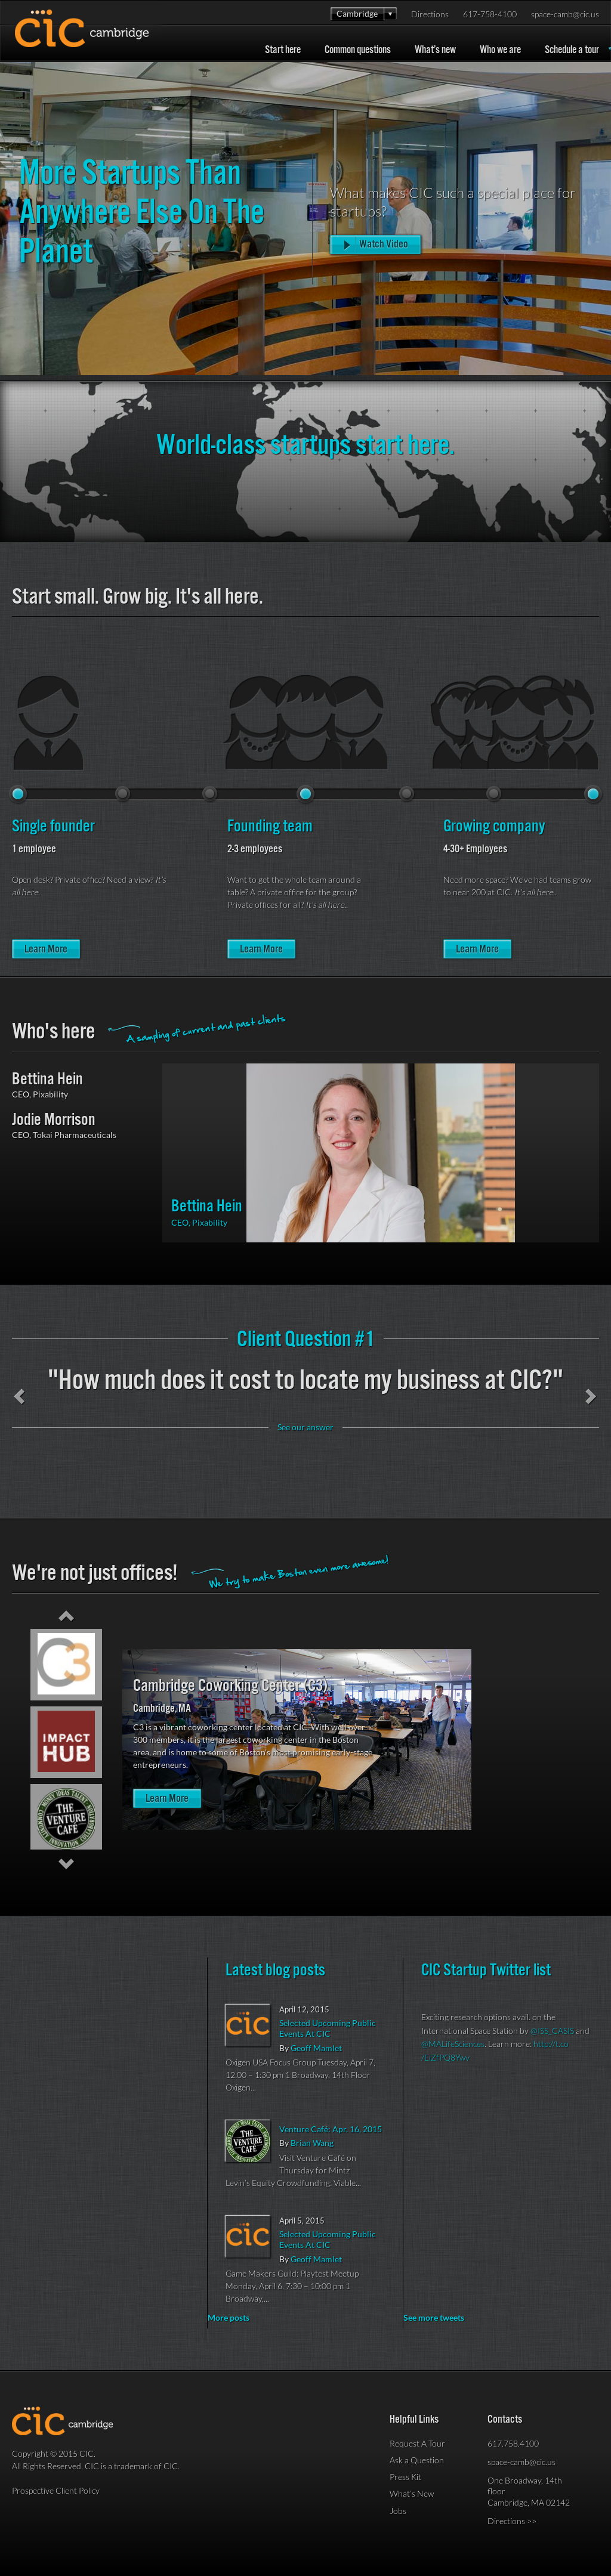 CIC Competitors, Revenue and Employees - Owler Company Profile